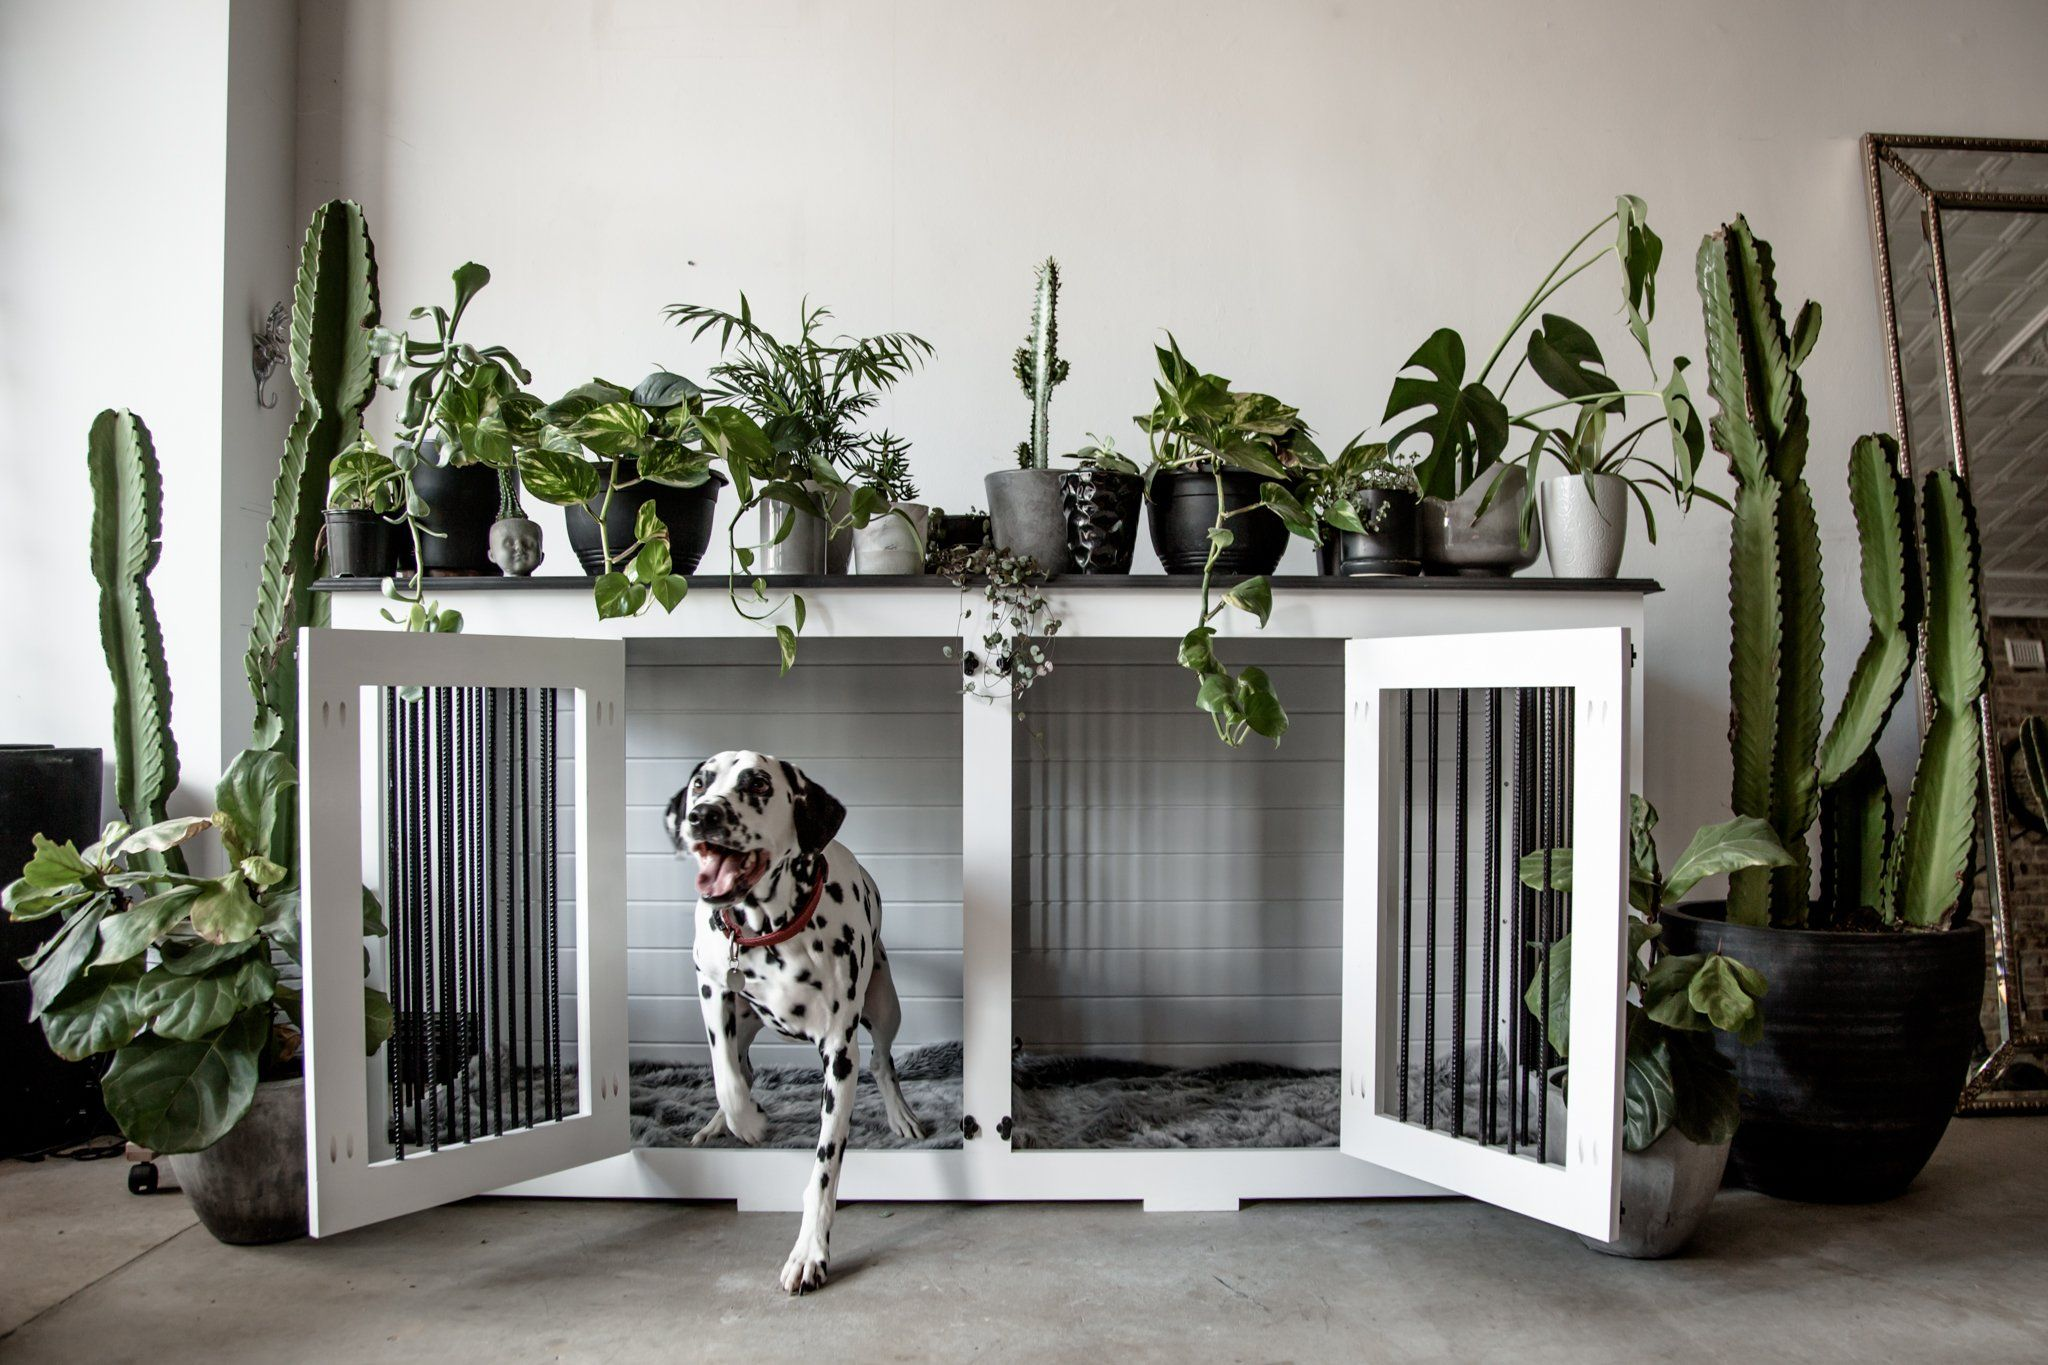 Kustom Kennels Luxury Dog Kennels and Crates based in